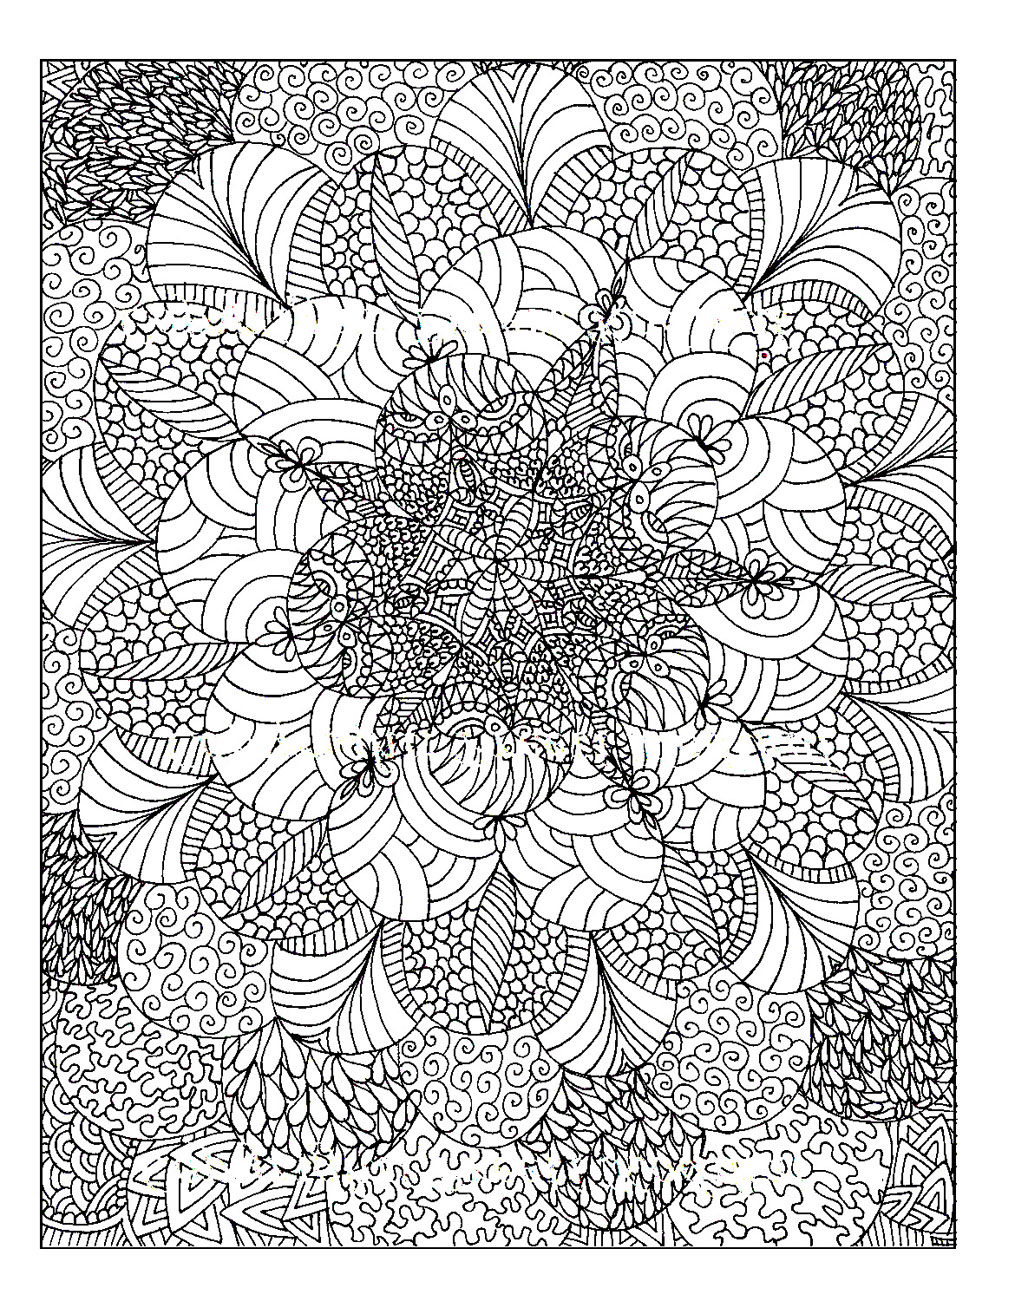 Colouring for adults anti stress colouring printables - Image anti stress ...